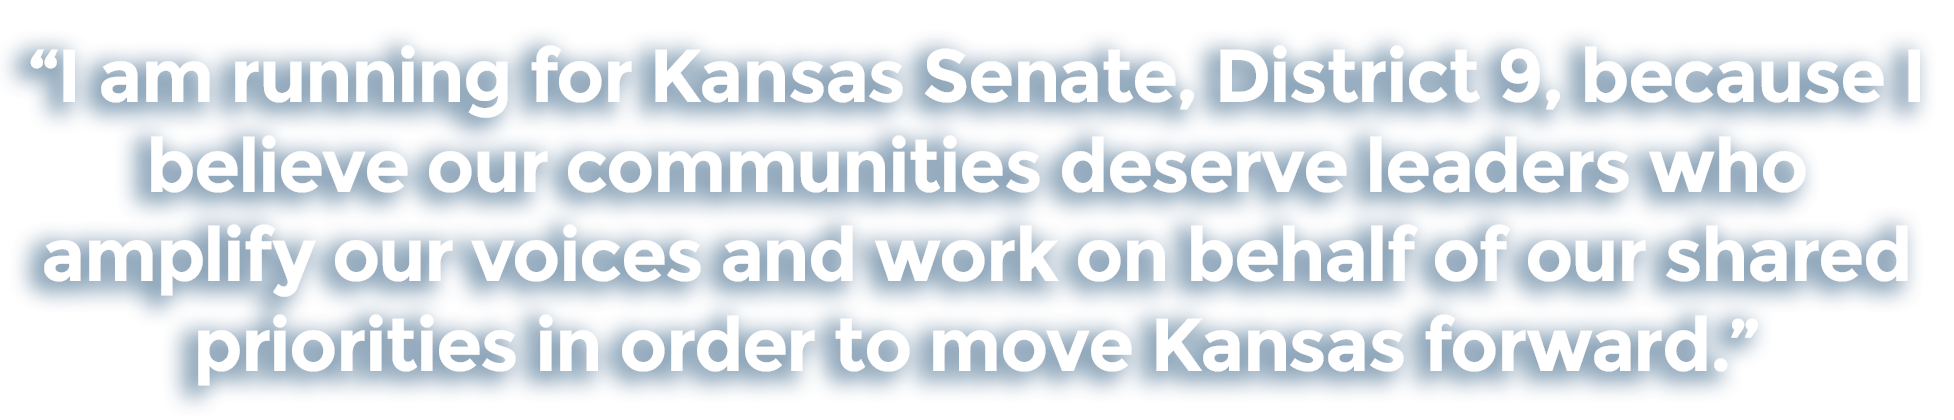 I am running for Kansas Senate, District 9, because I believe our communities deserve leaders who amplify our voices and work on behalf of our shared priorities in order to move Kansas forward.